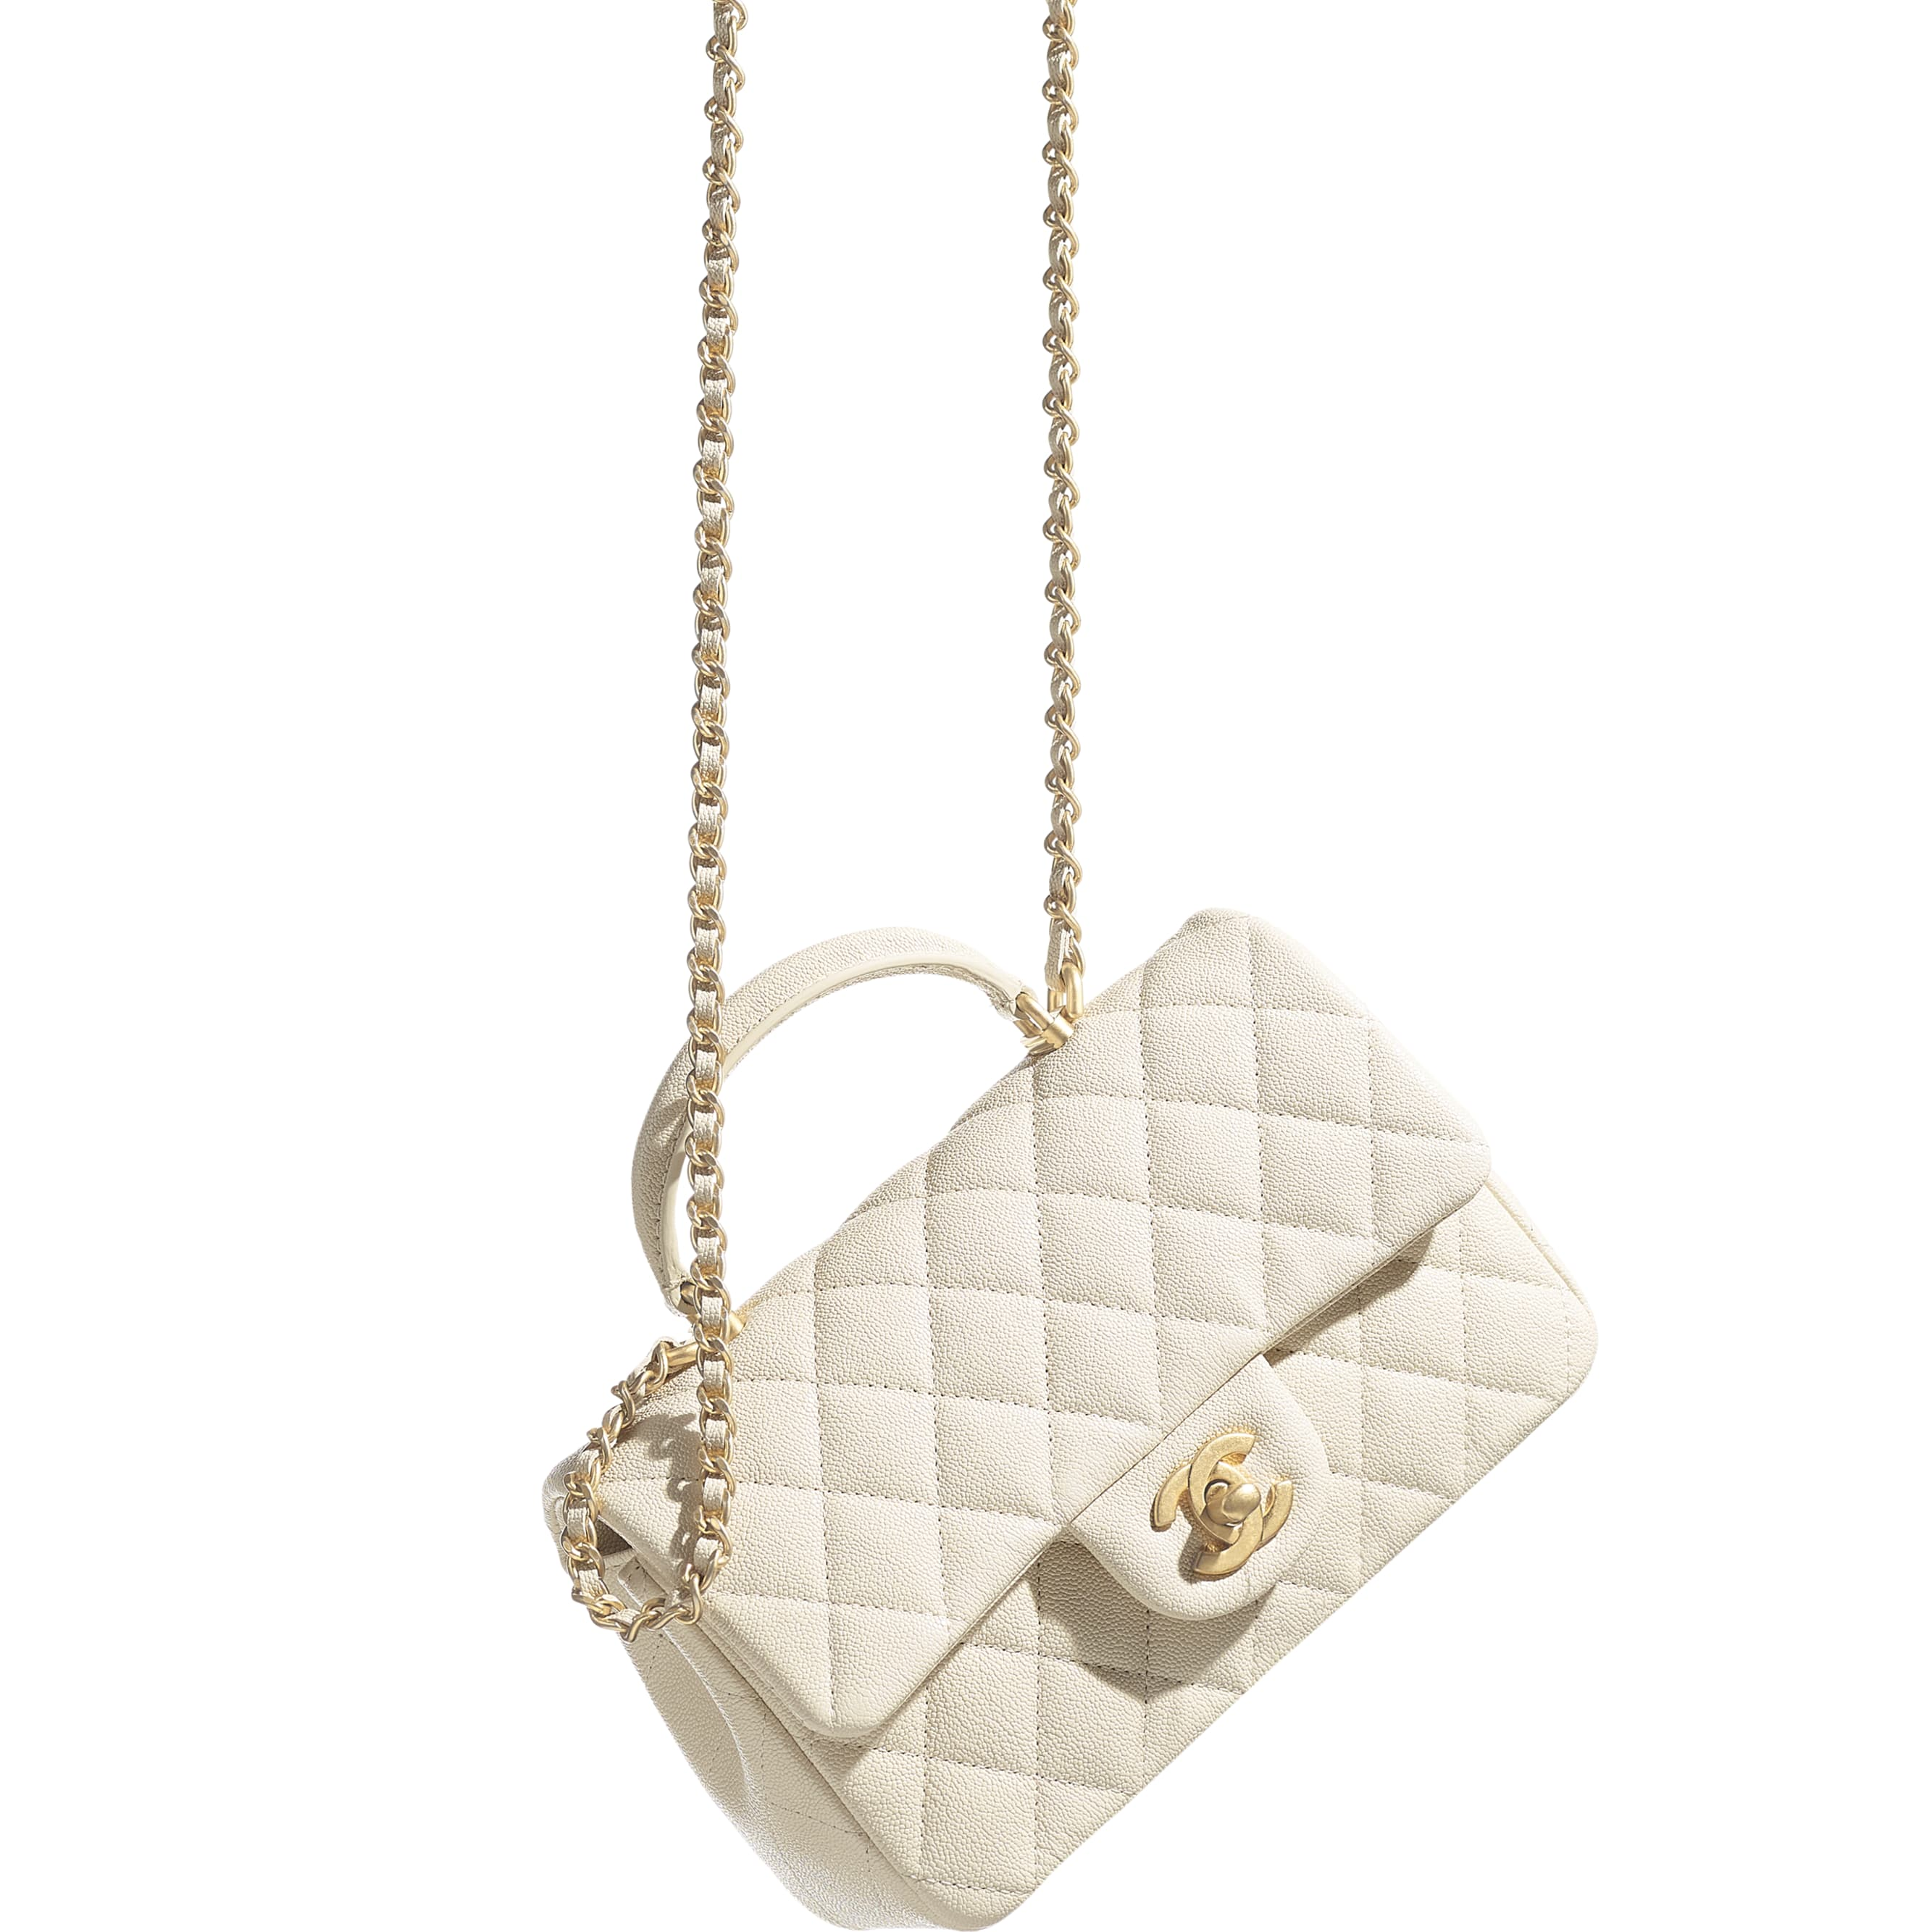 Mini Flap Bag with Top Handle - Beige - Grained Calfskin & Gold-Tone Metal - CHANEL - Extra view - see standard sized version